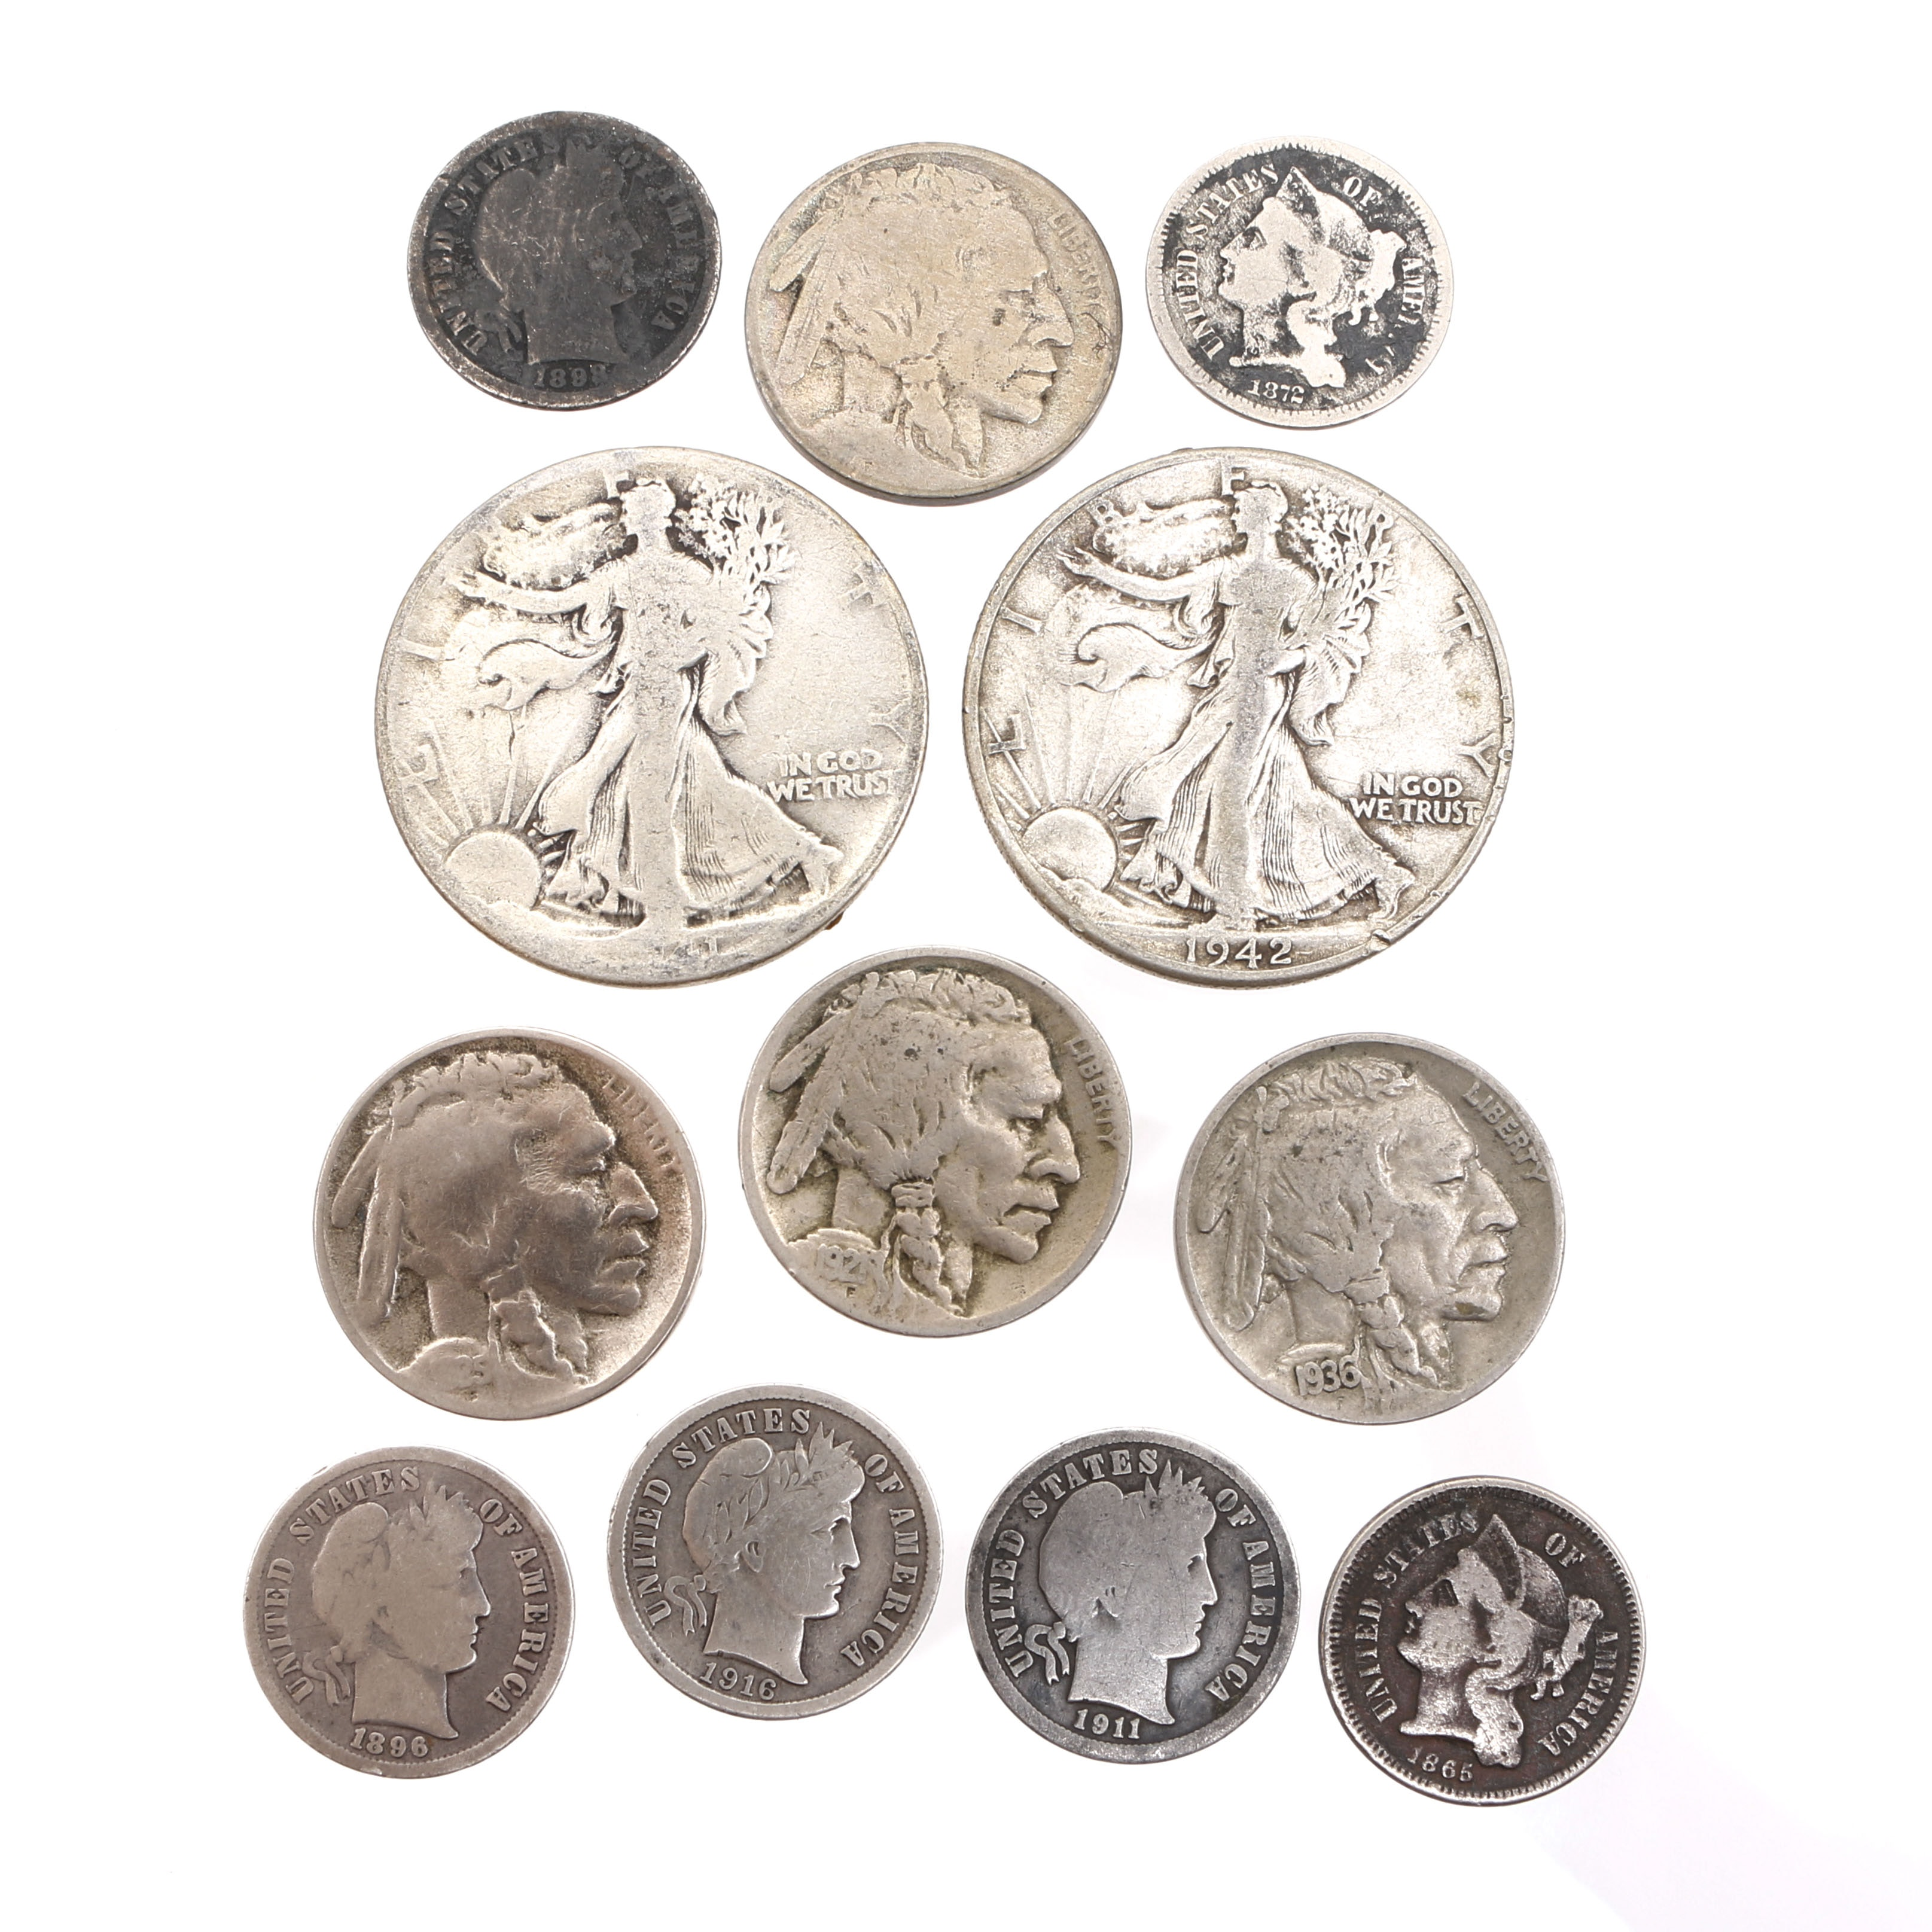 Antique and Vintage American Coin Collection